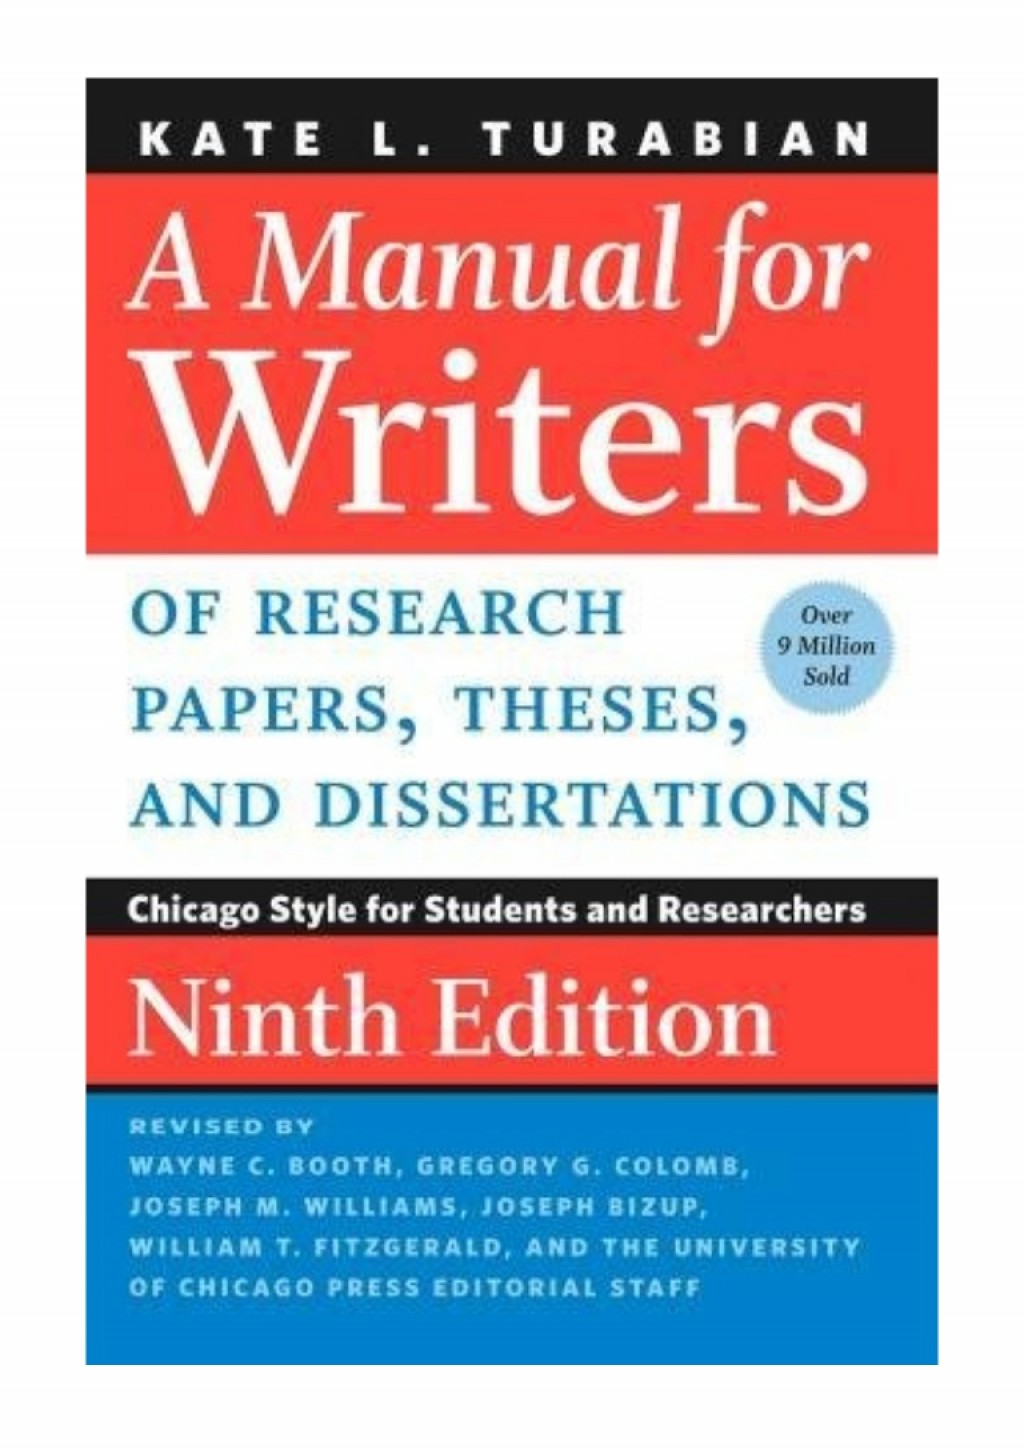 007 022643057x Amanualforwritersofresearchpapersthesesanddissertationsnintheditionbykatel Thumbnail Research Paper Manual For Writers Of Papers Theses And Sensational A Dissertations Ed. 8 Turabian Ninth Edition Large